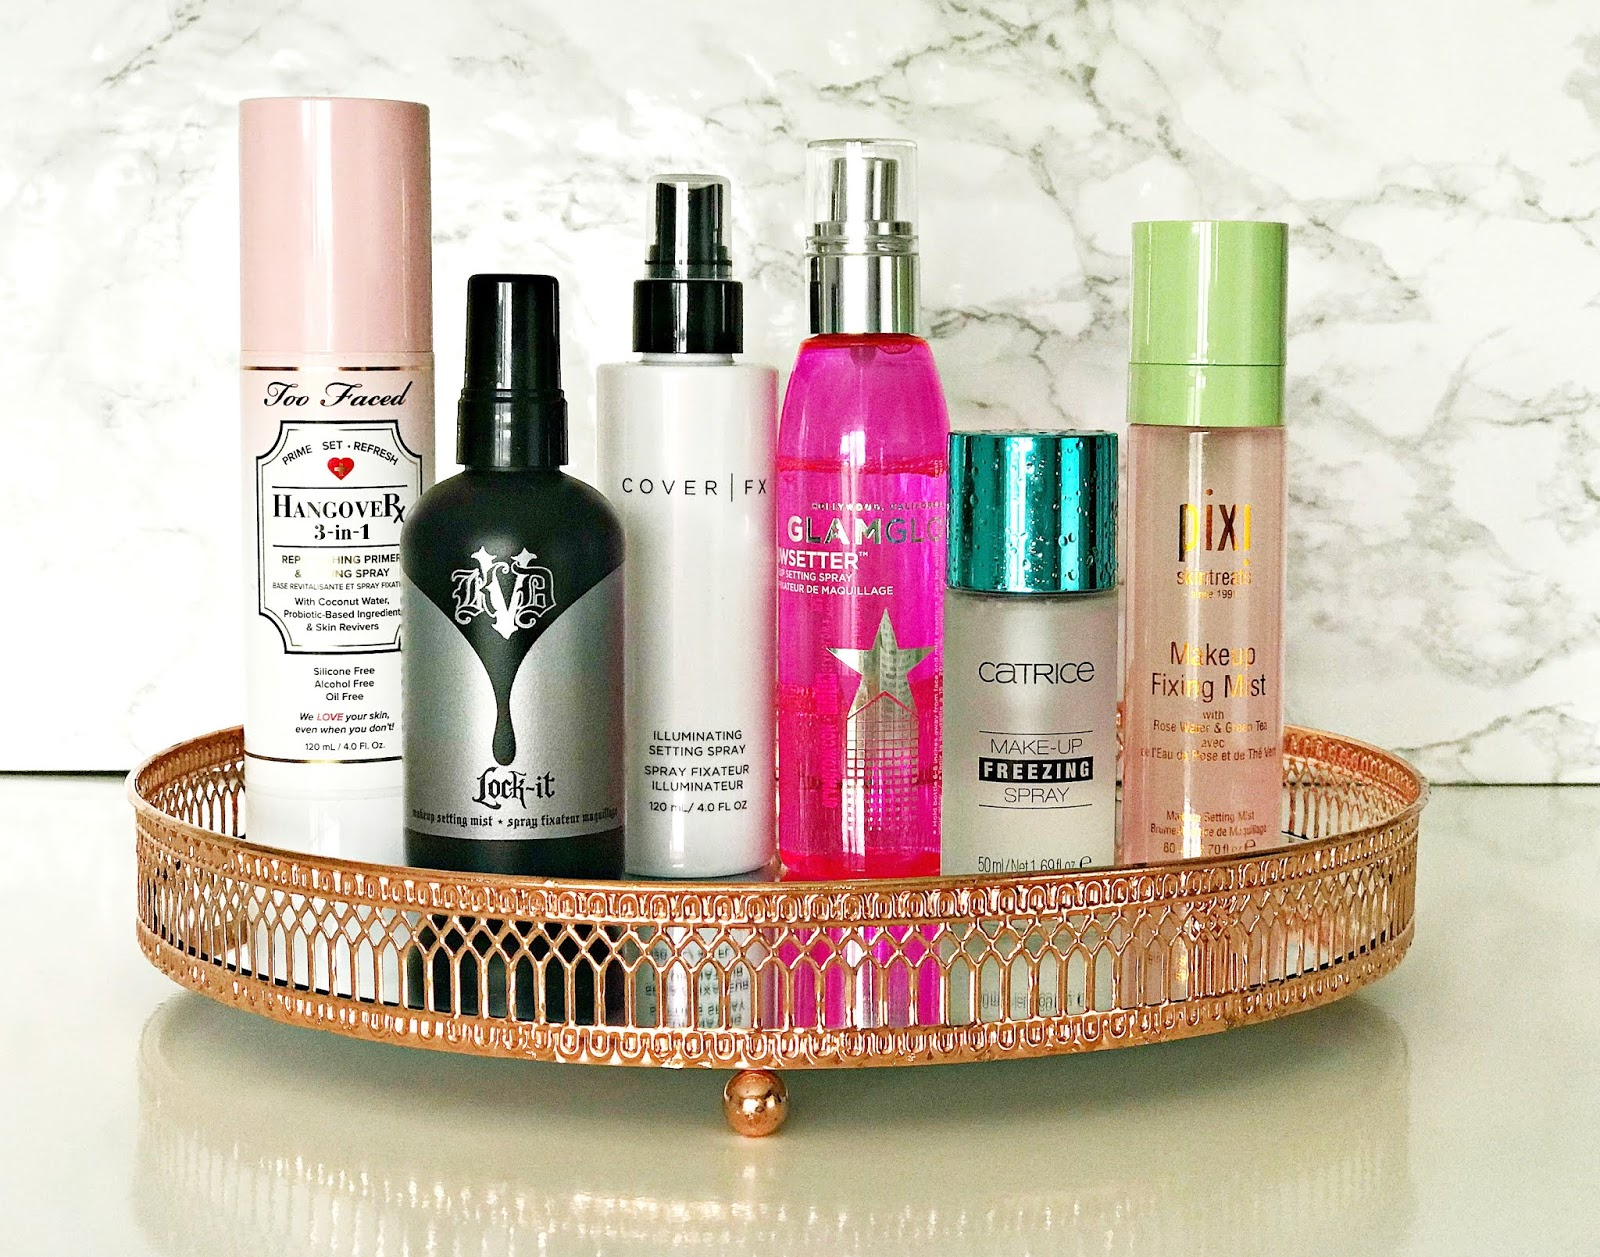 Setting Spray, Cover Fx Illuminating Setting Spray, GLAMGLOW Glowsetter Spray, Catrice Makeup Freezing Spray, Kat Von D Lock It Makeup Setting Mist, Pixi Makeup Fixing Mist, Too Faced Hangover 3-in-1 Replenishing Primer and Setting Spray, Review